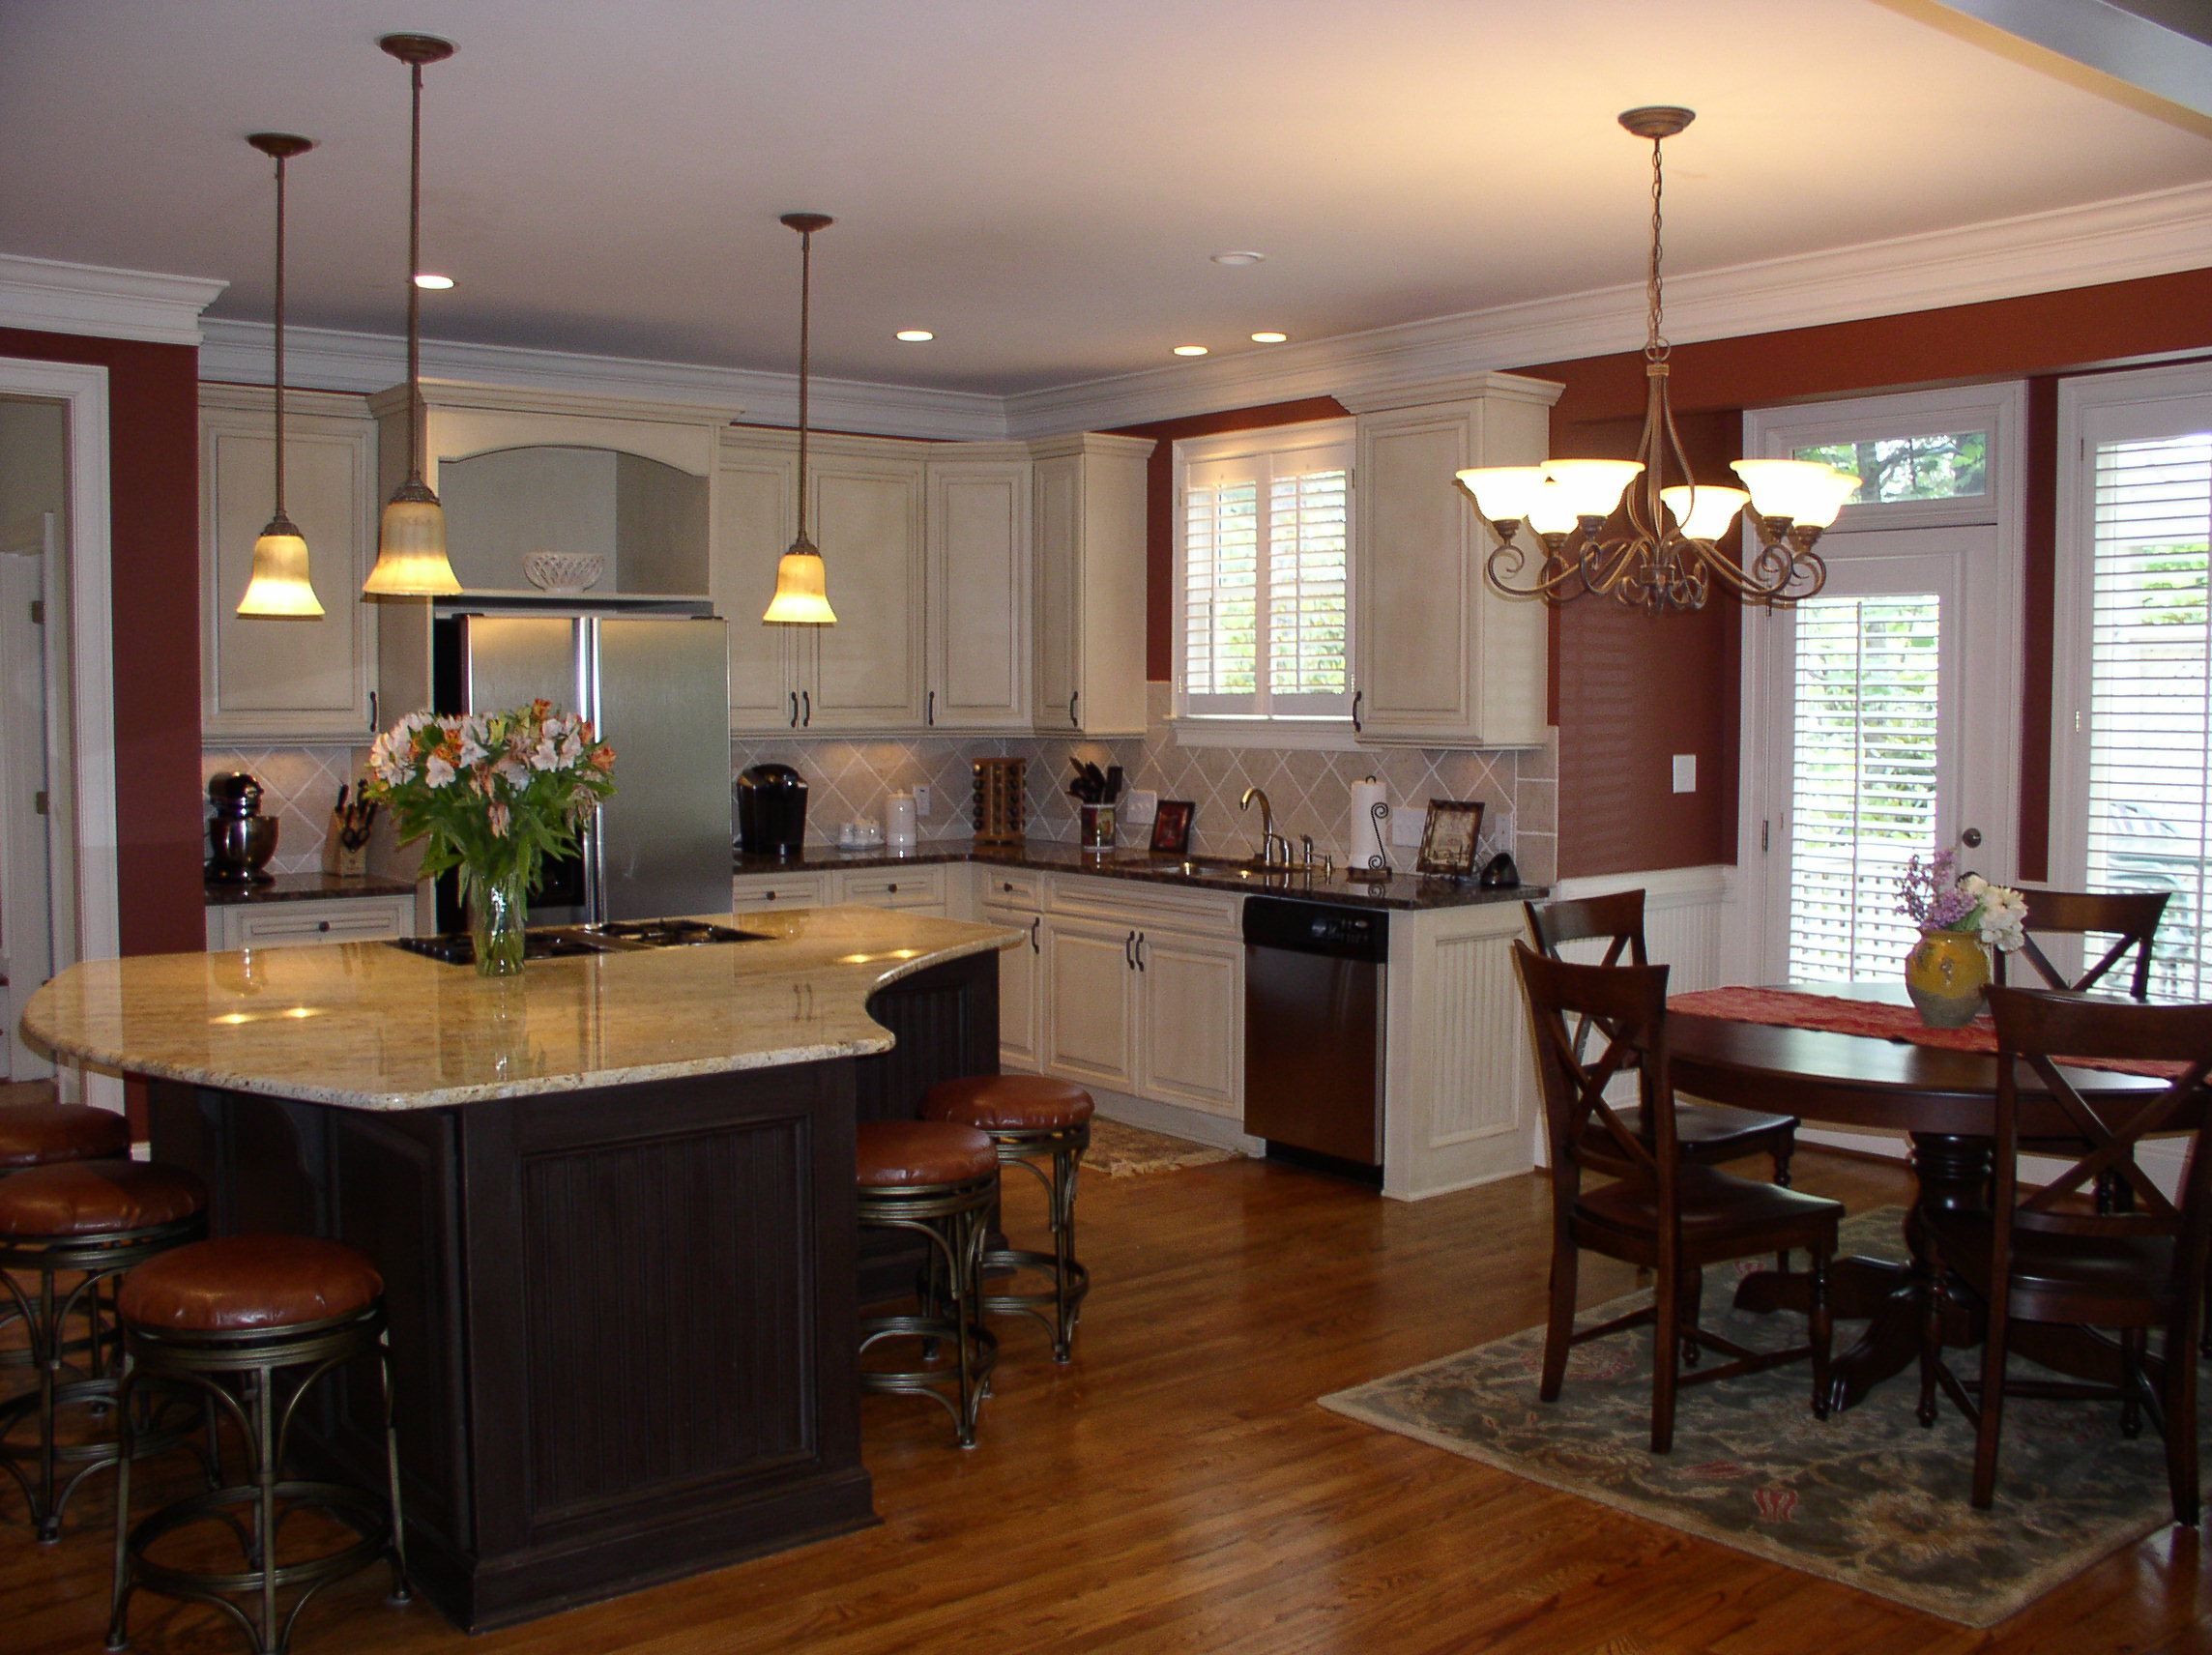 featured home executive home in white columns country club kitchen and breakfast area